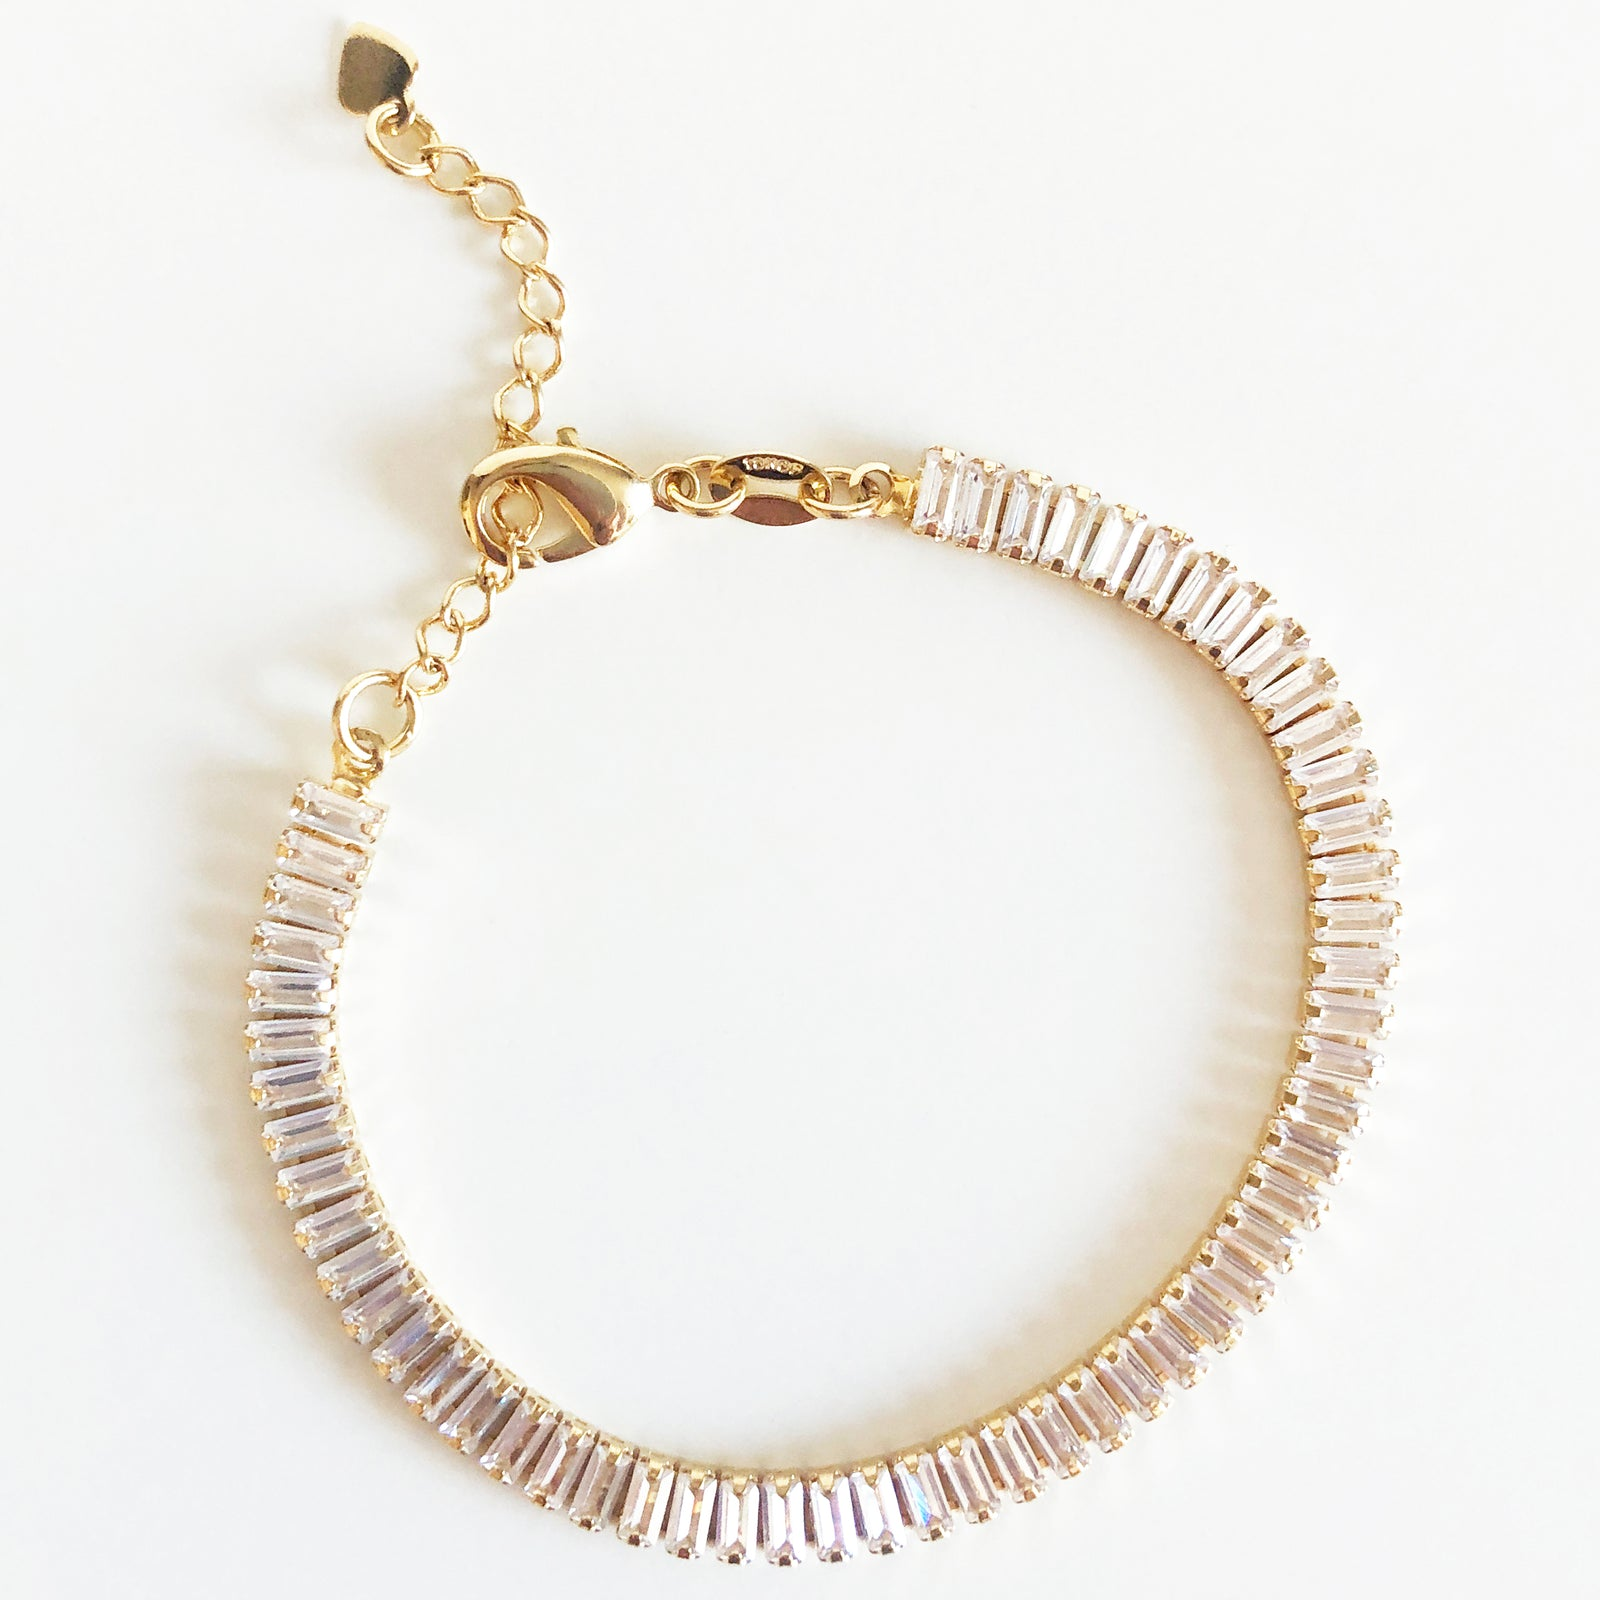 Gold bracelet with sparkling white rectangular stones with extender clasp